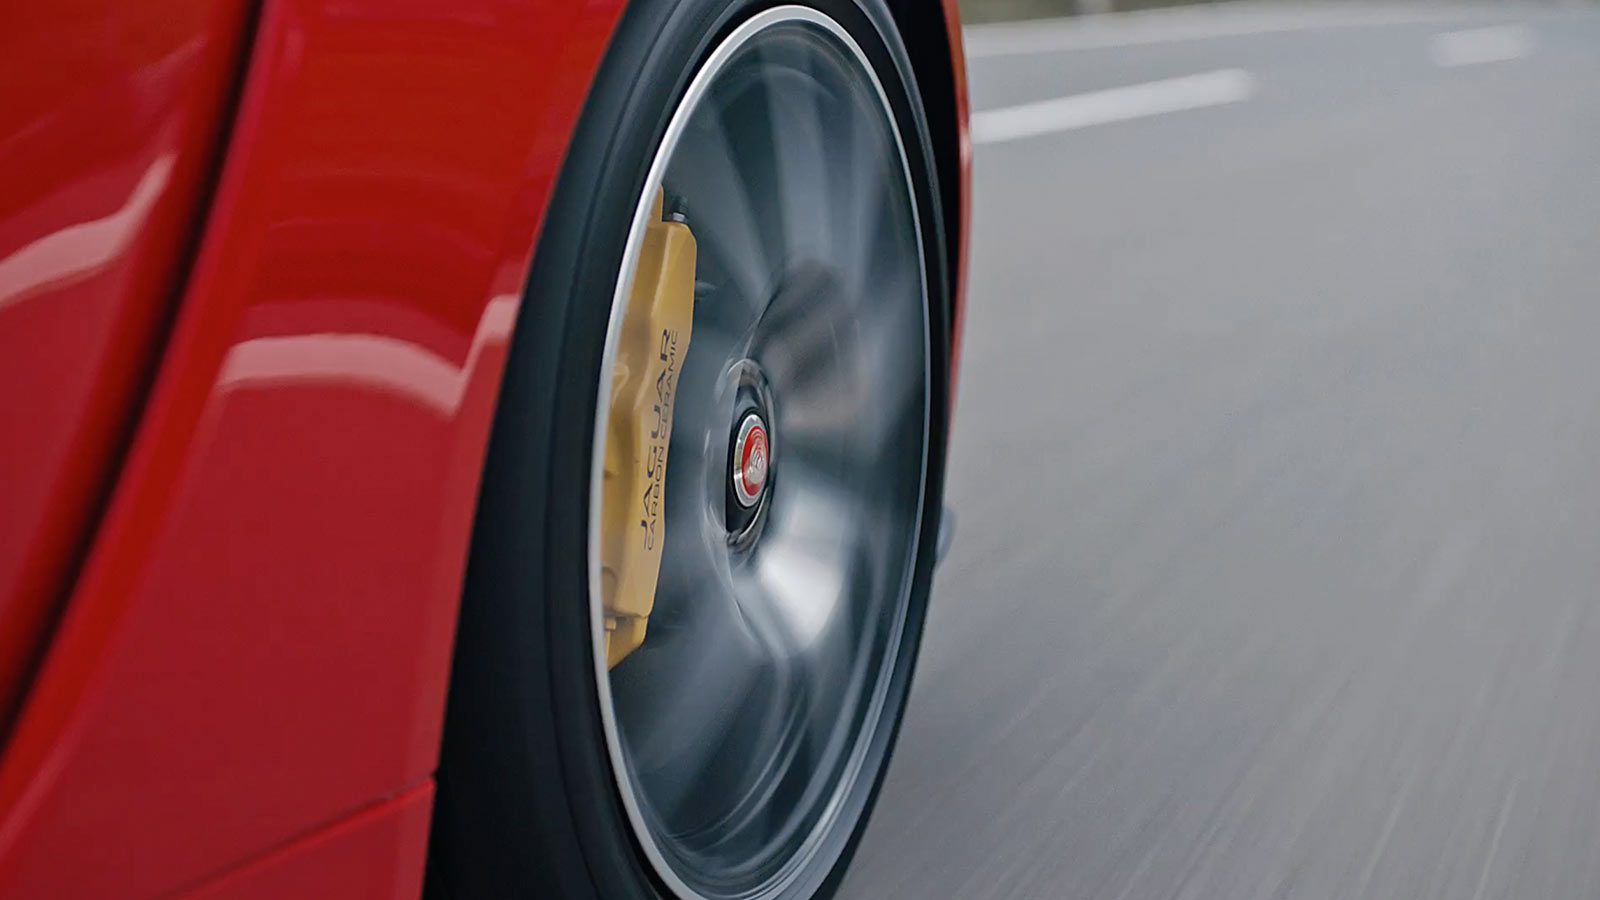 A close up of a jaguar f-type wheel while driving.